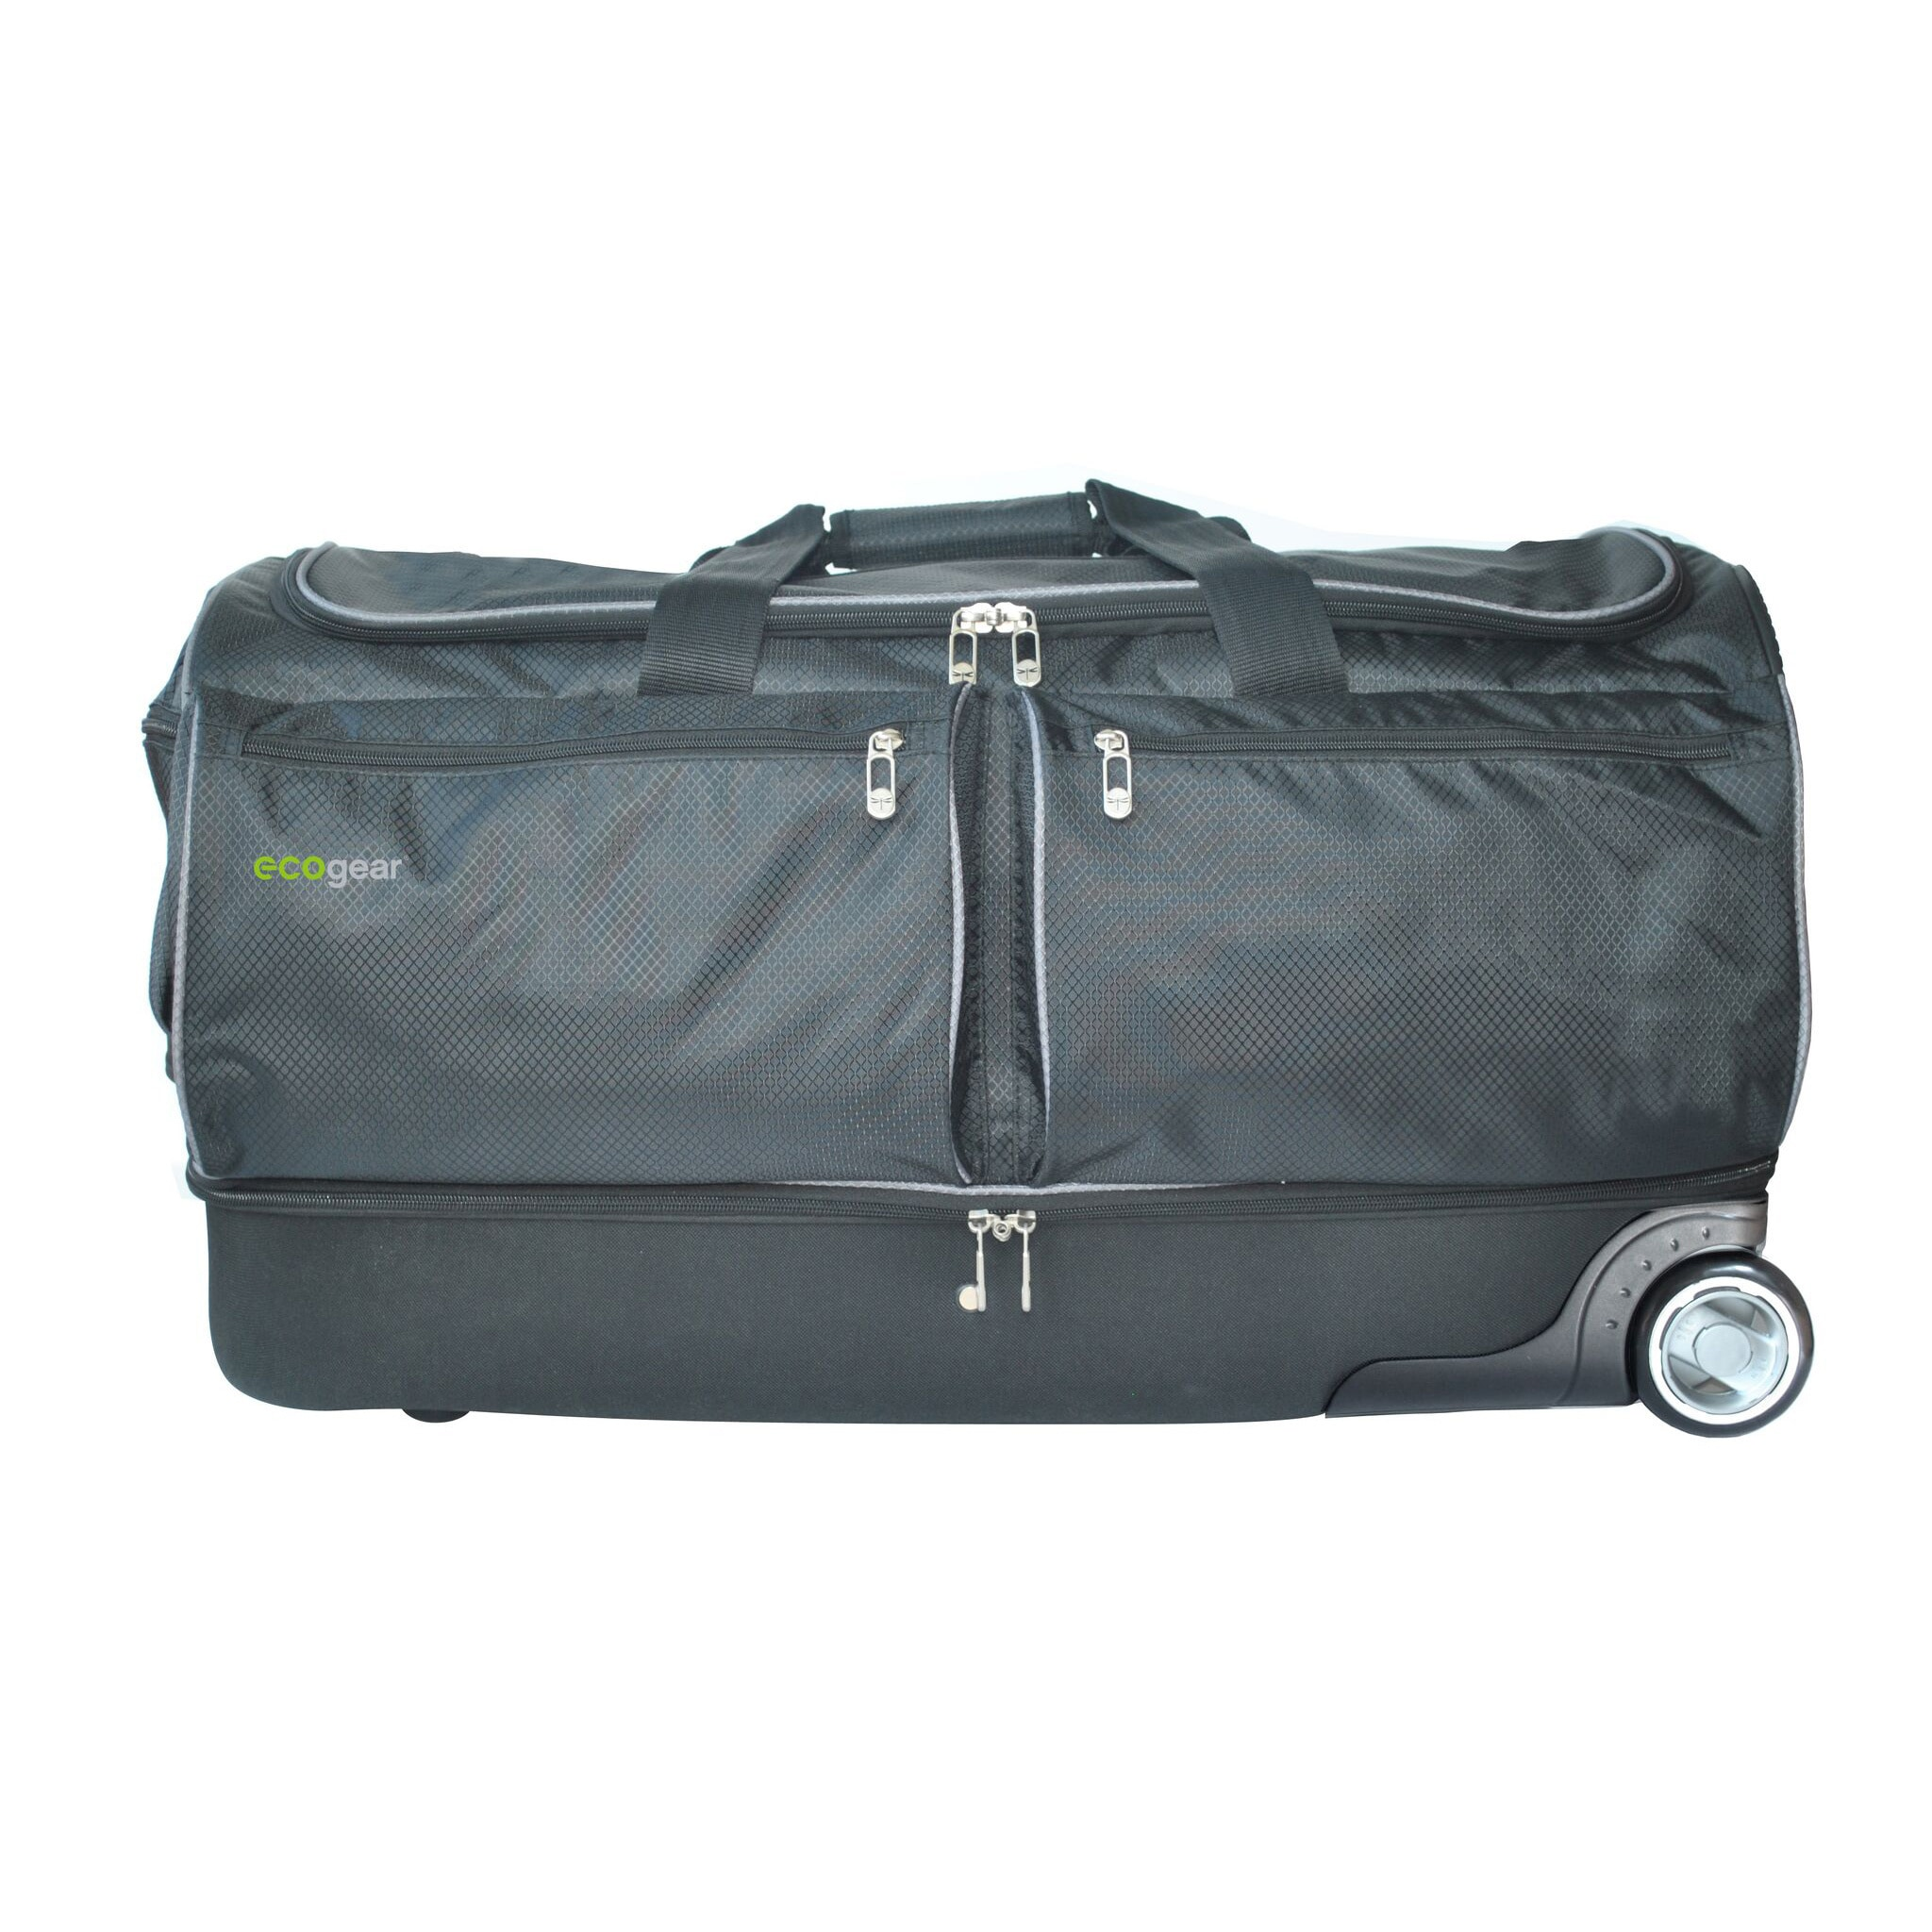 Ecogear 28 Inch Wheeled Duffel Bag With Garment Rack On Free Shipping Today 19399675